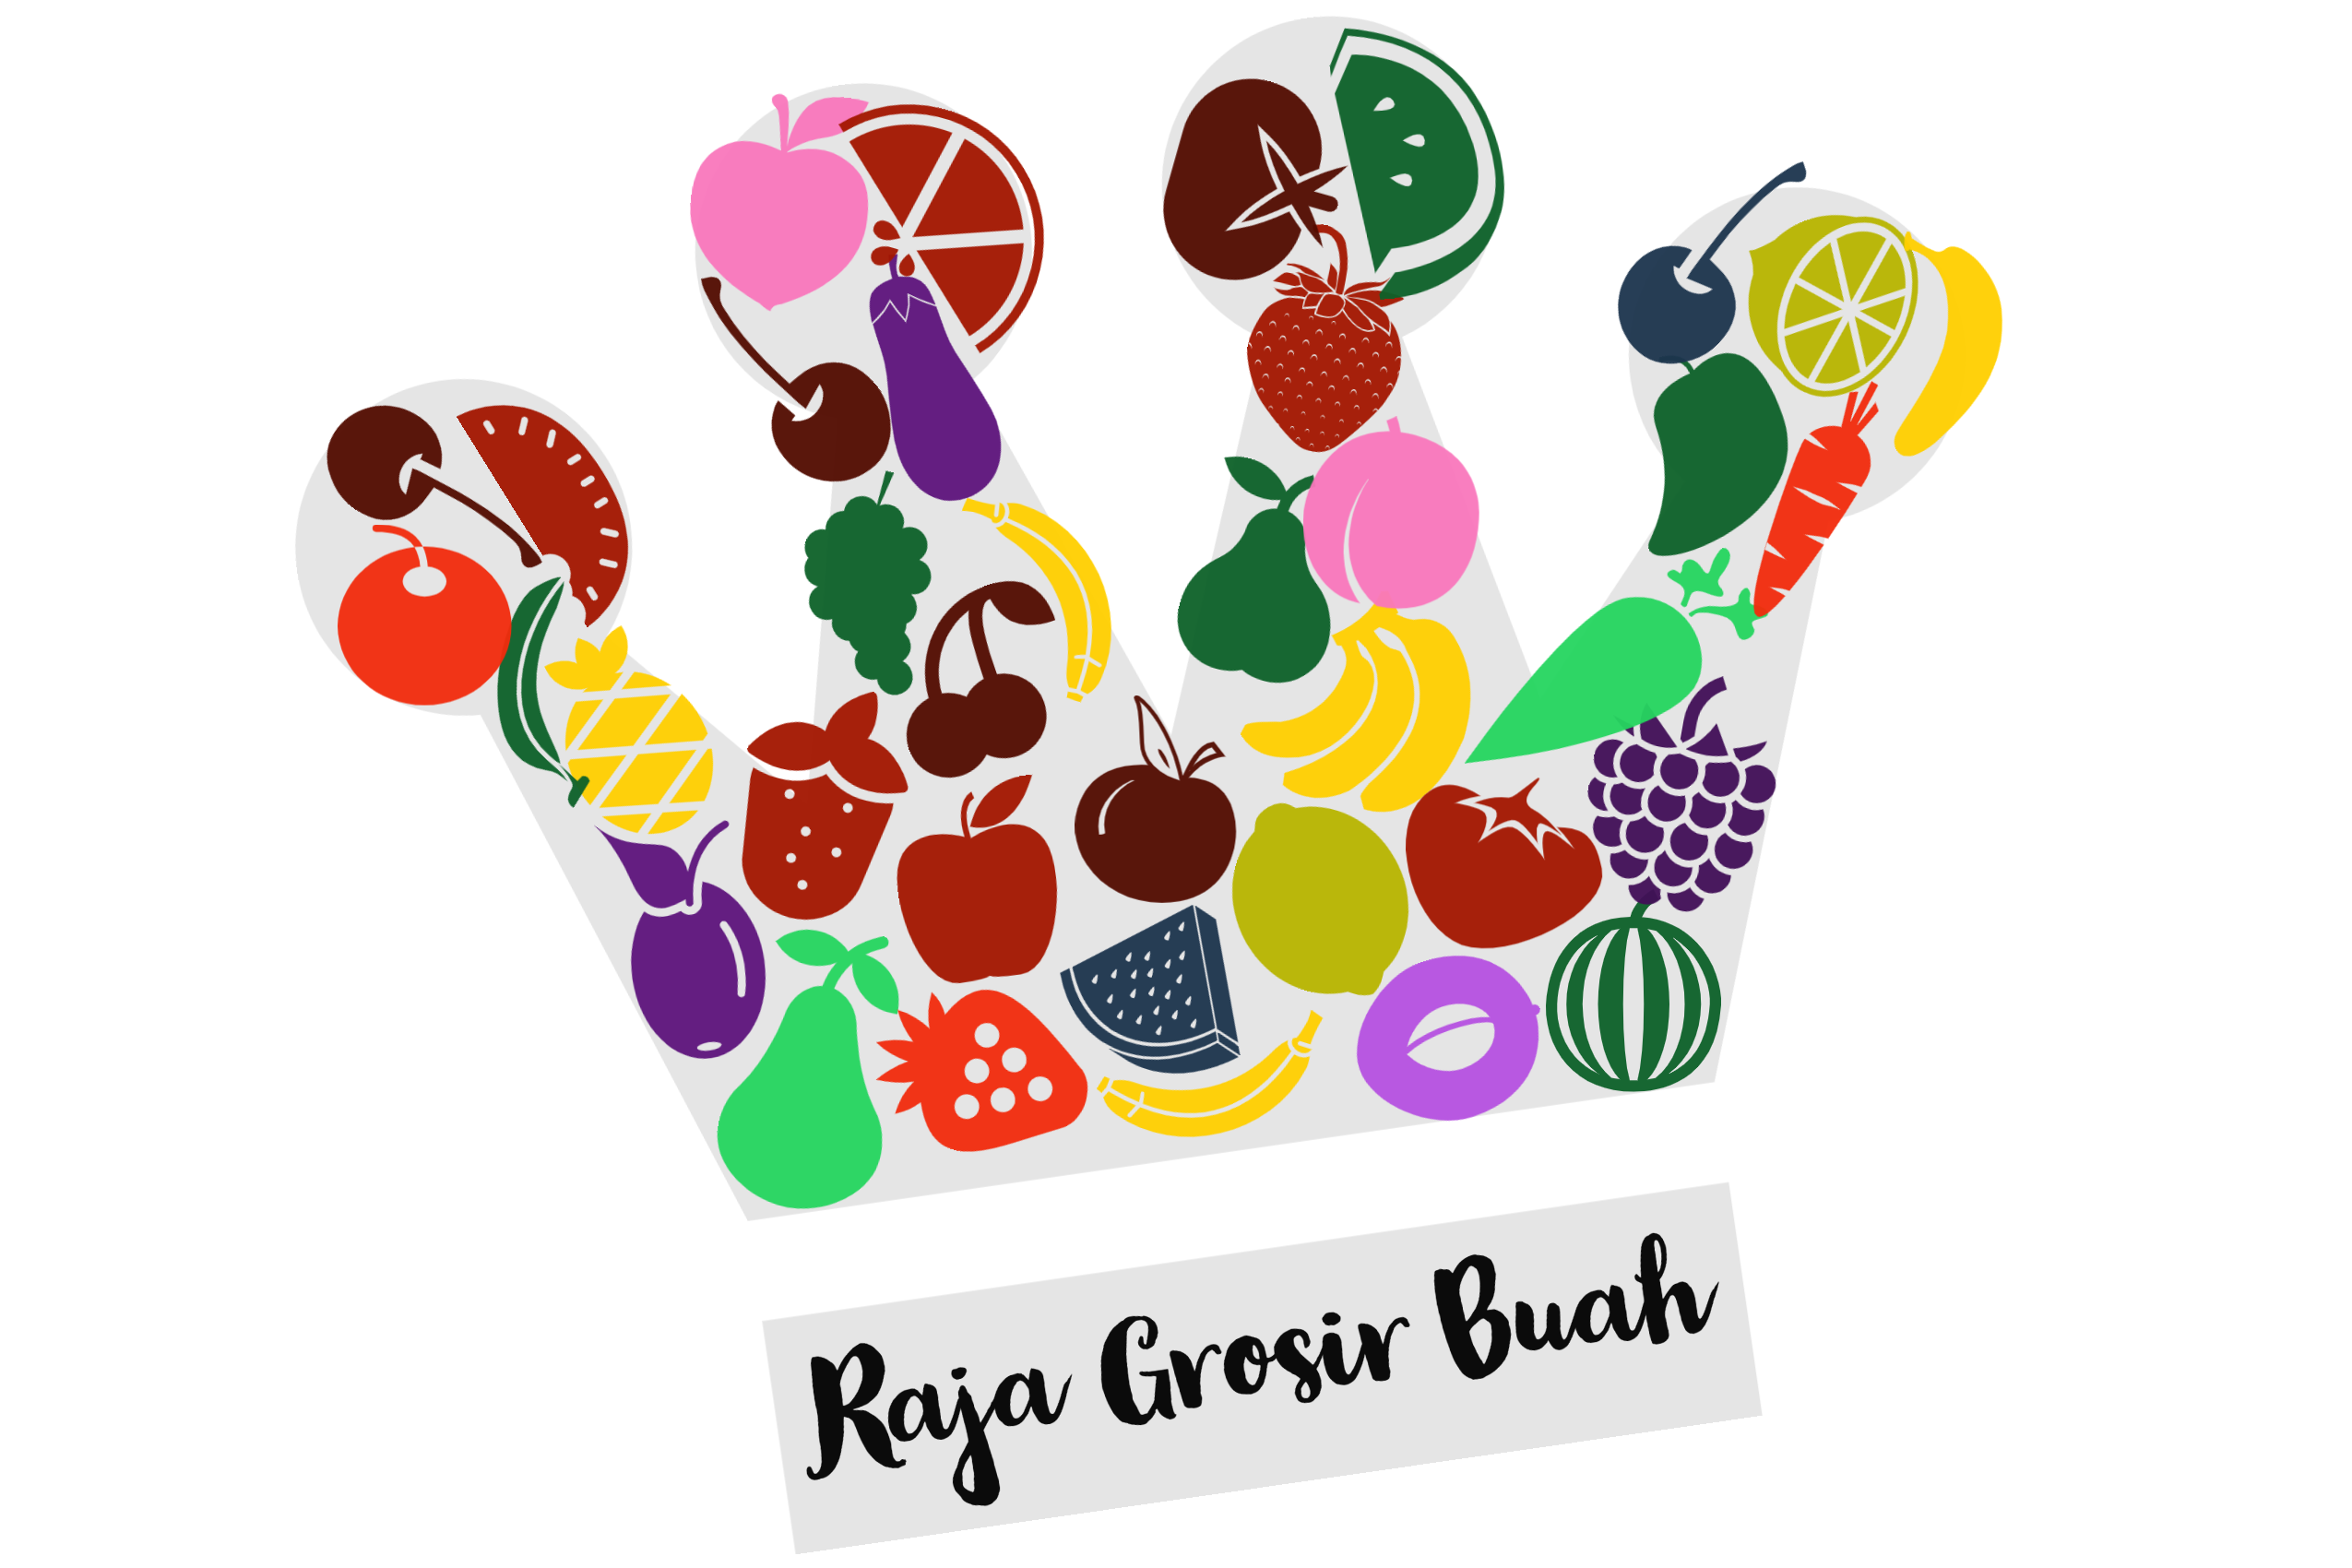 Agromaret raja-grosir-buah profile photo